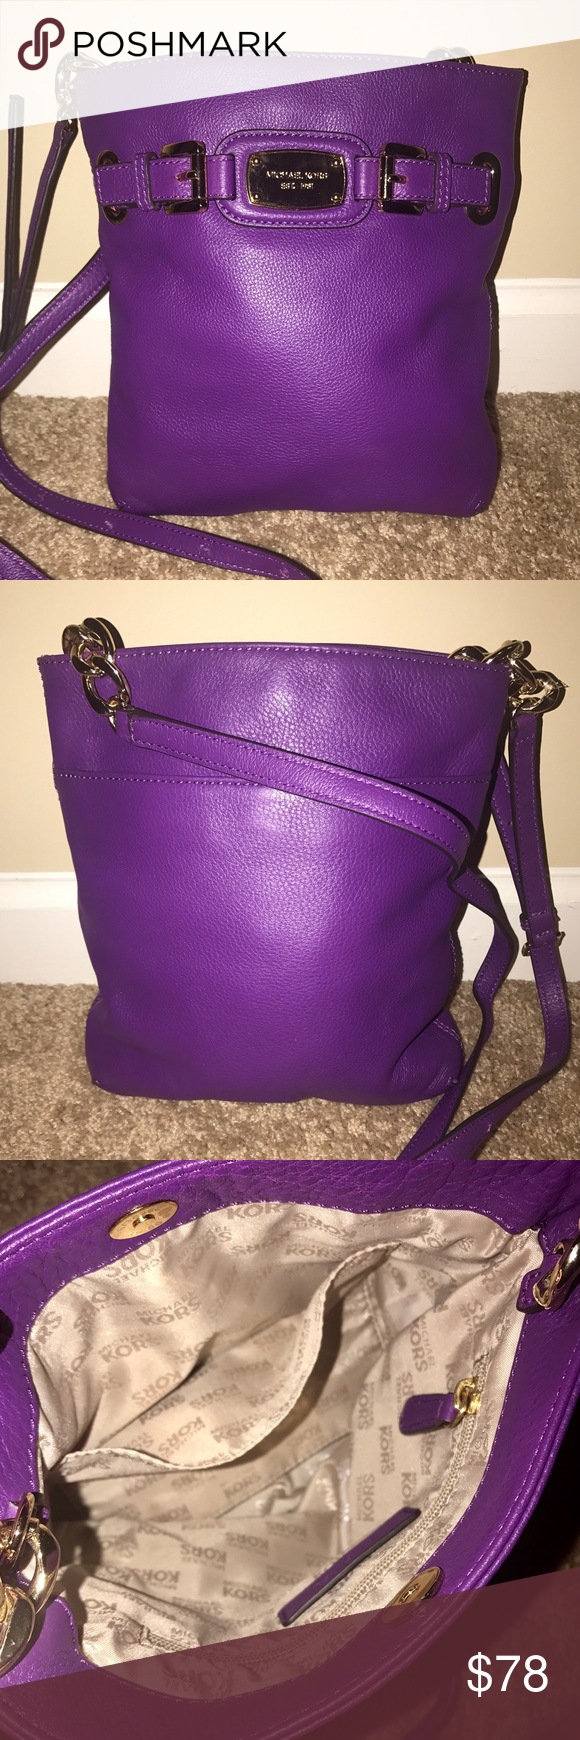 1a7070ea1148 Authentic Purple Michael Kors Purse Authentic Purple Michael Kors Purse •  Crossbody Style • Brand New Without Tags